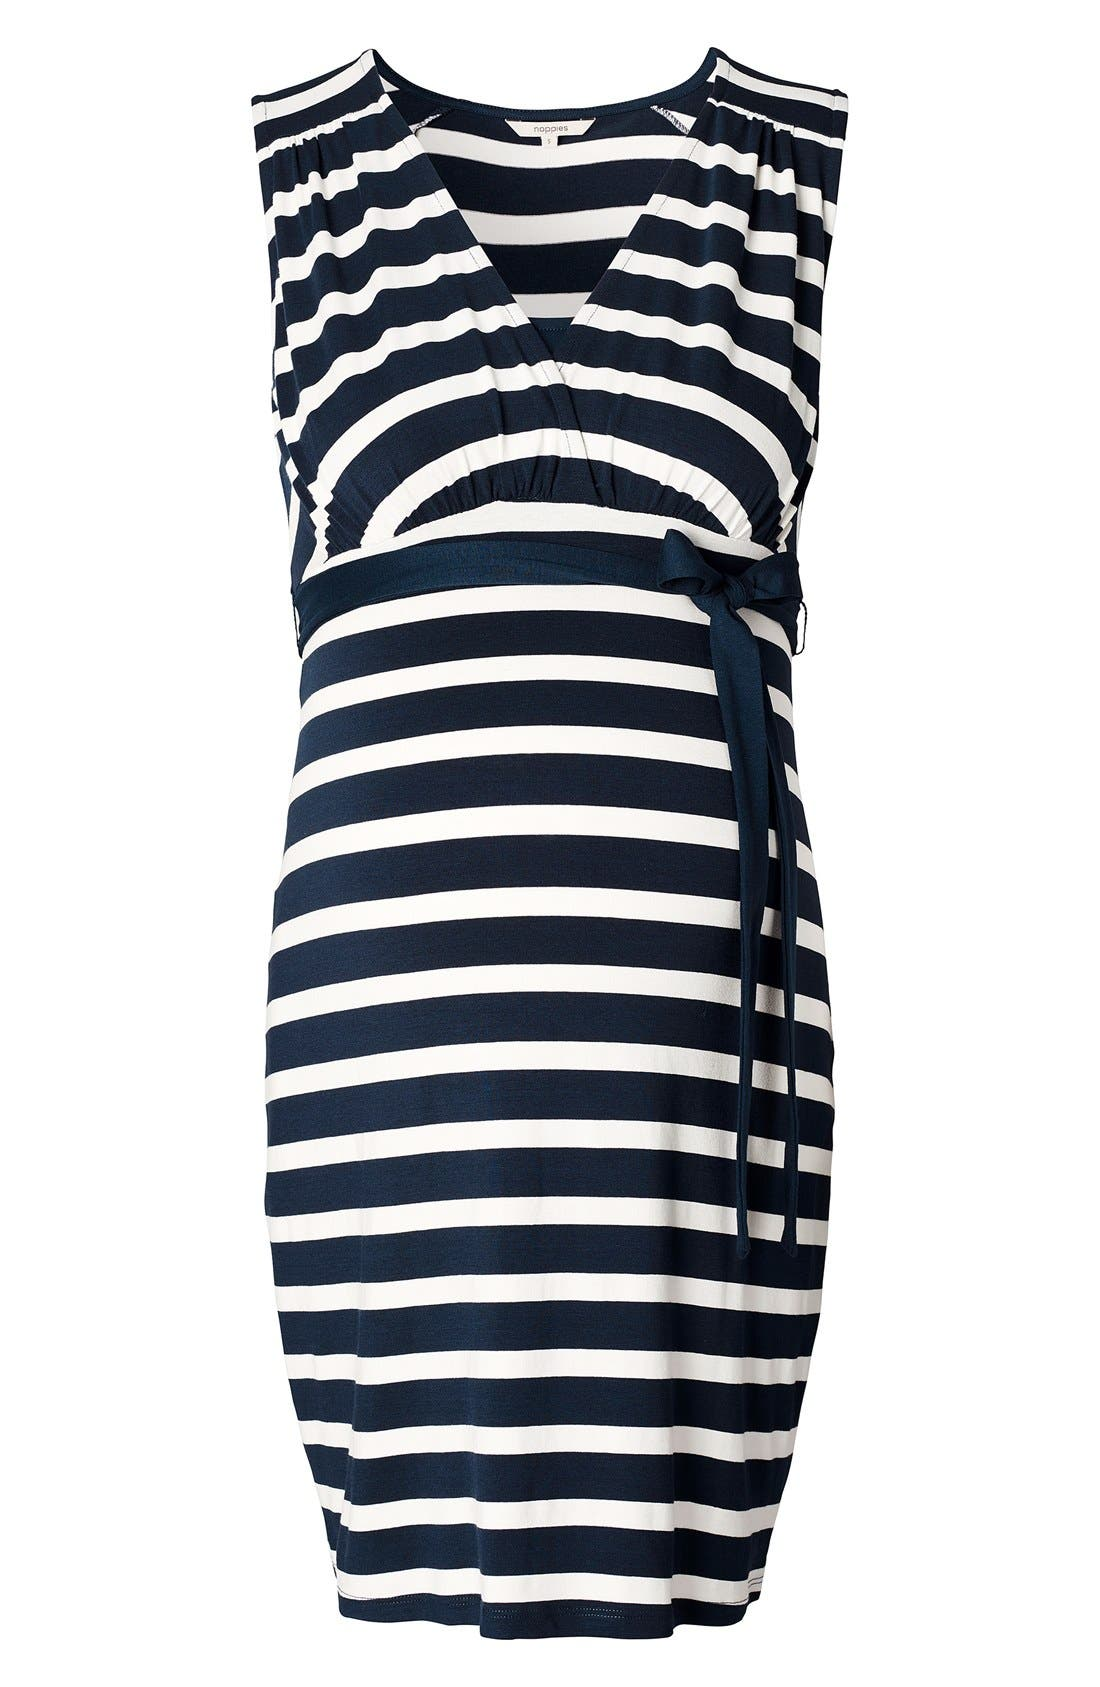 Main Image - Noppies 'Lara' Stripe Maternity Dress